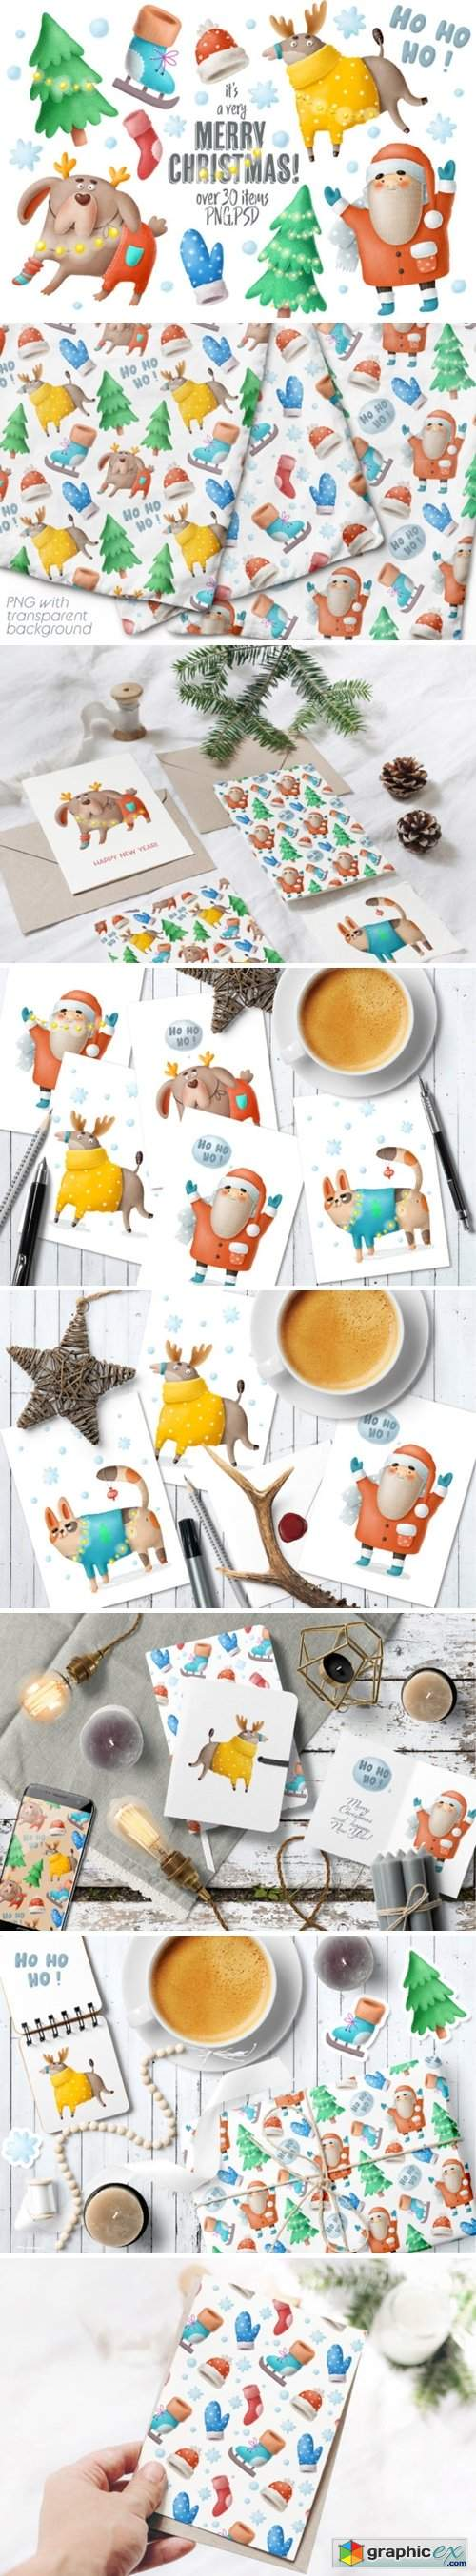 Christmas Clipart and Characters Set